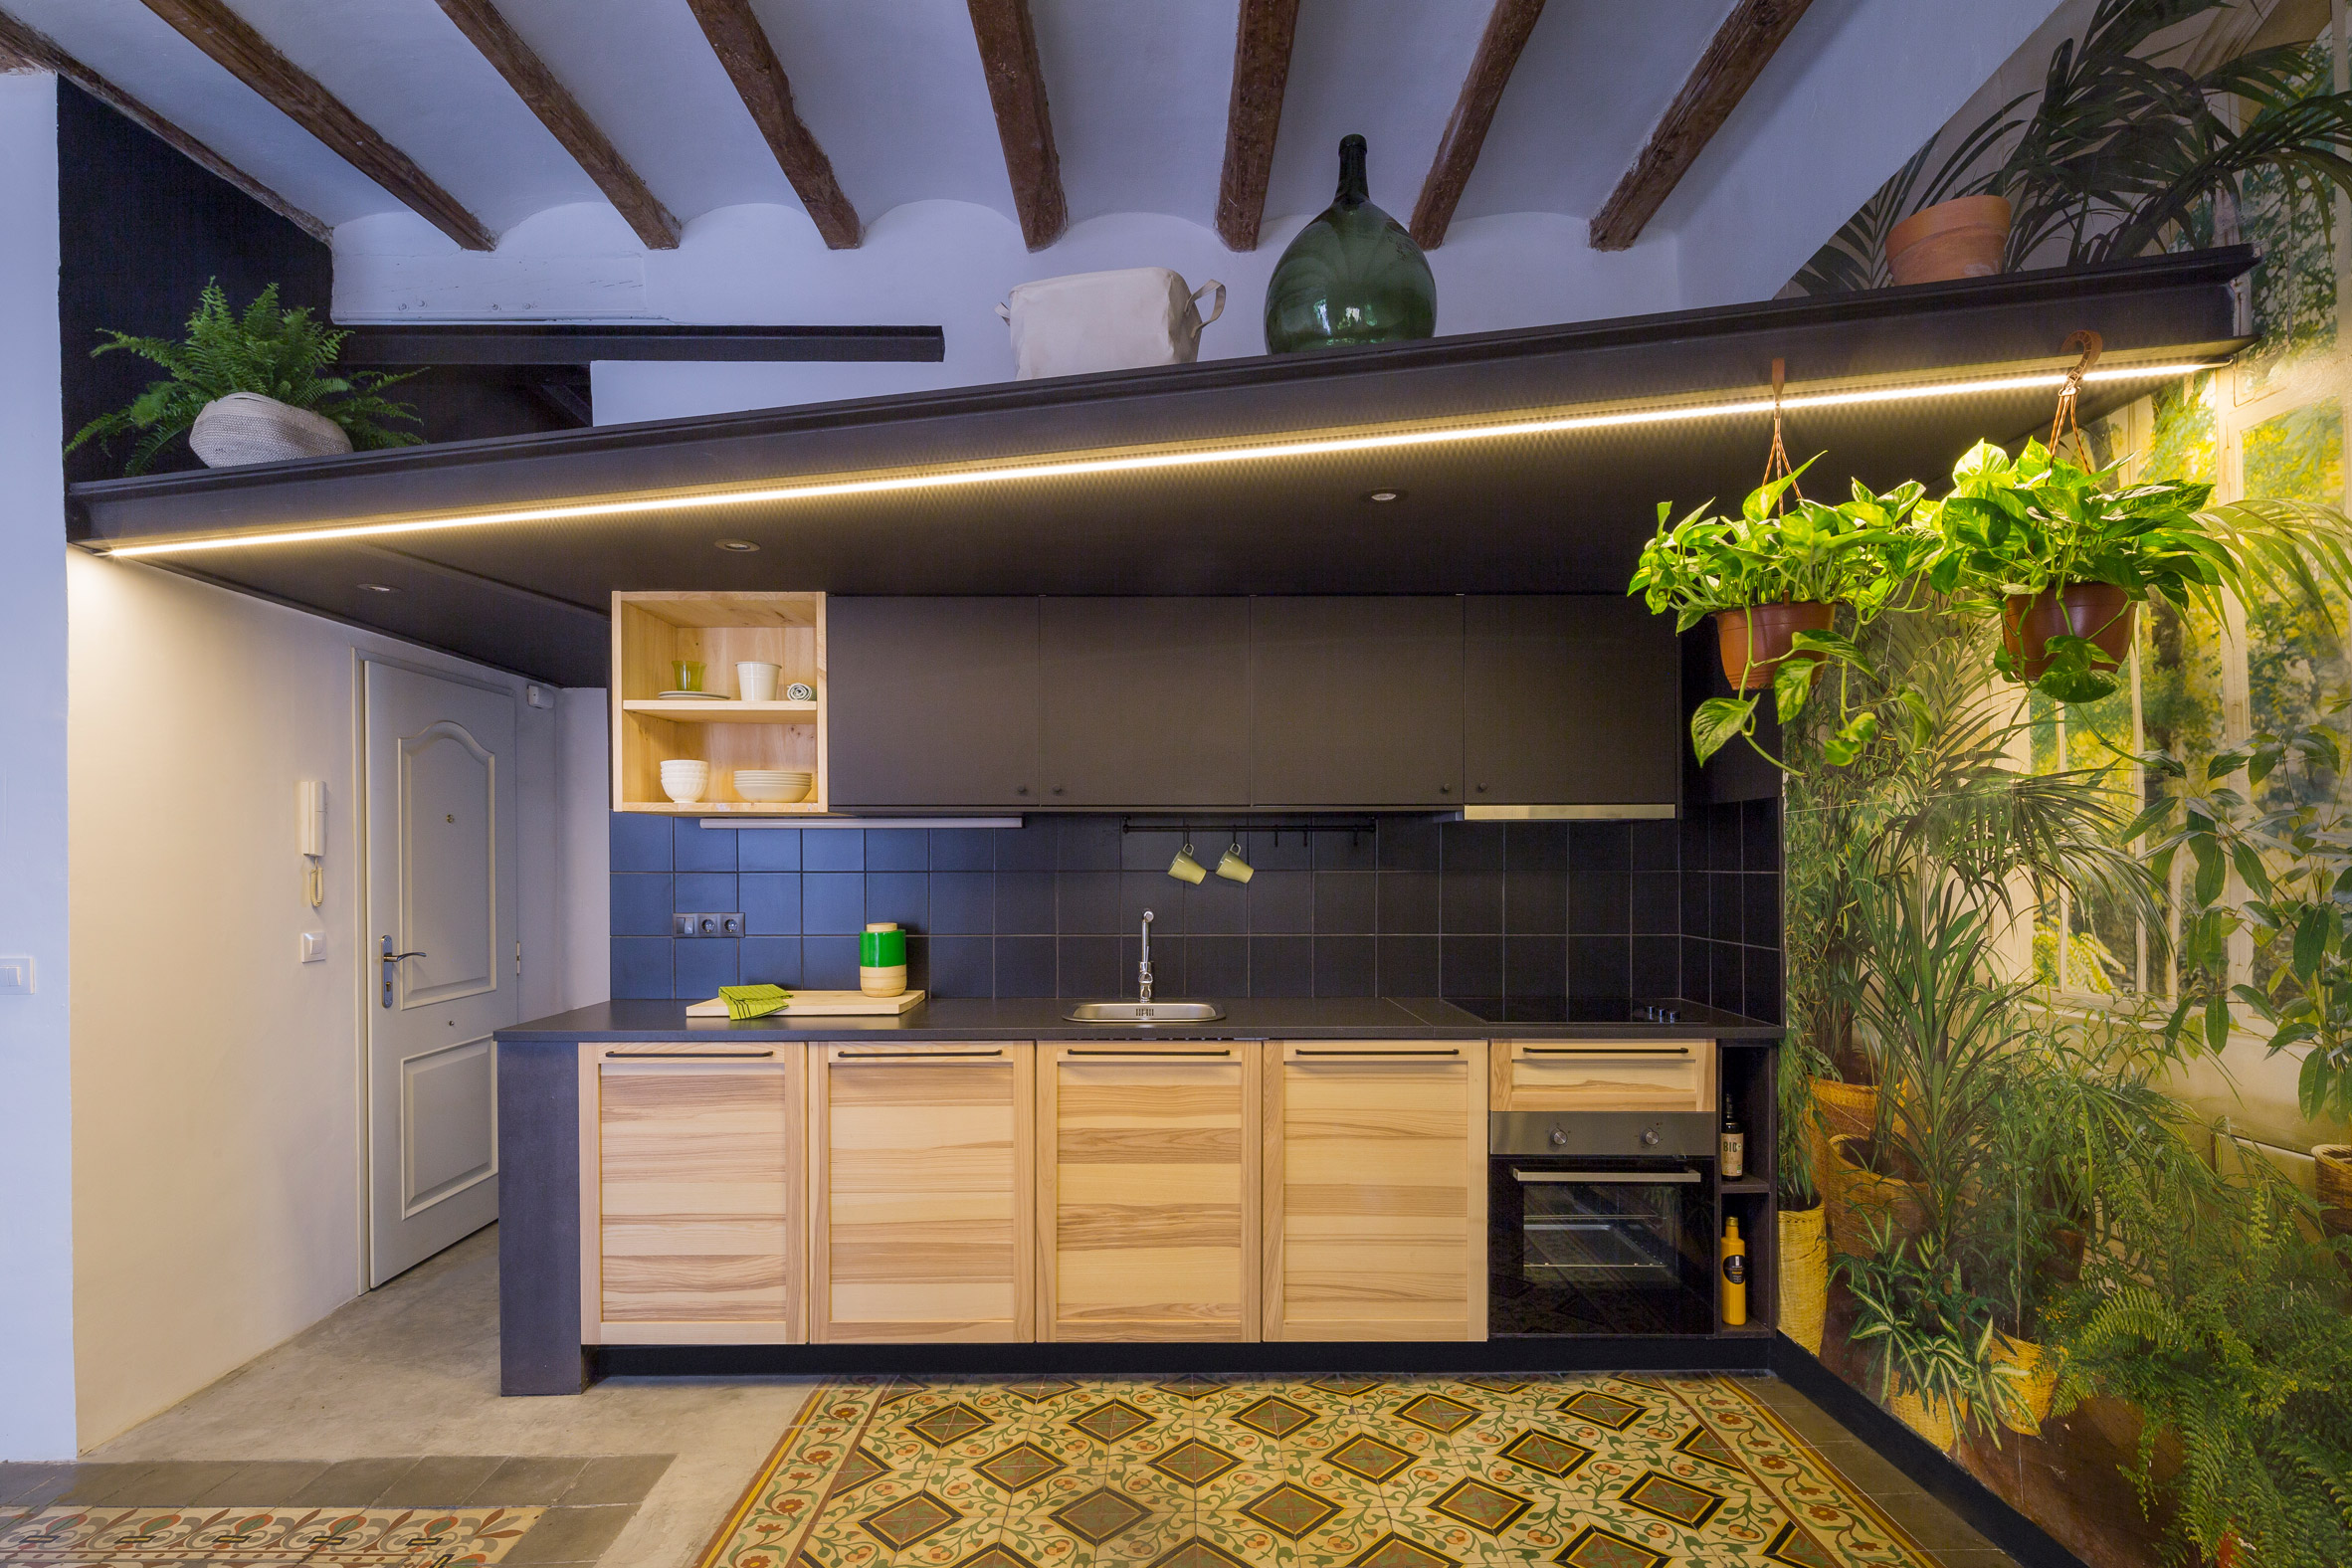 end-of-the-roc-nook-architects-interiors-apartments-spain-barcelona_dezeen_2364_col_3